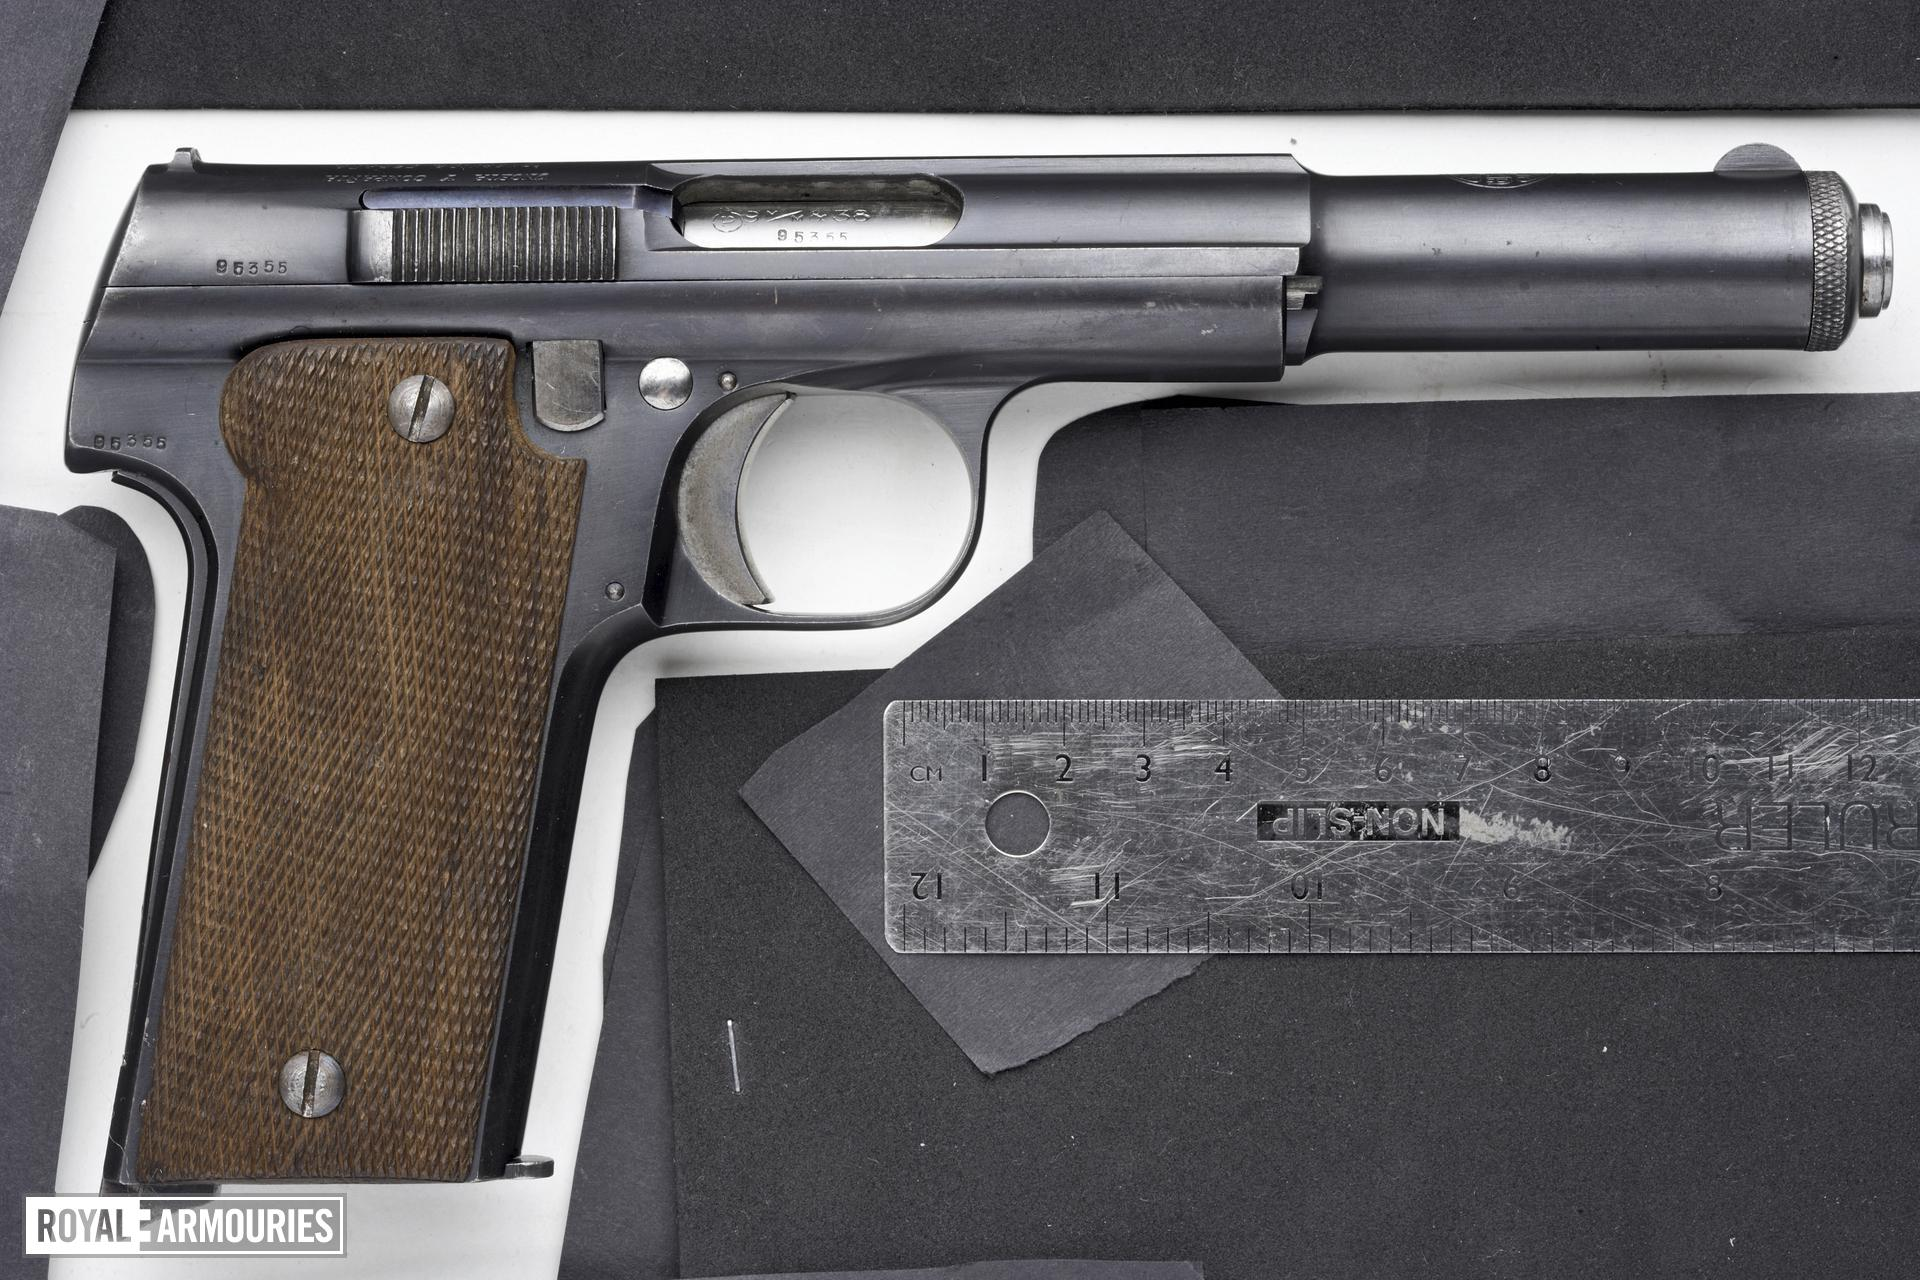 Centrefire self-loading pistol - Astra Model 400